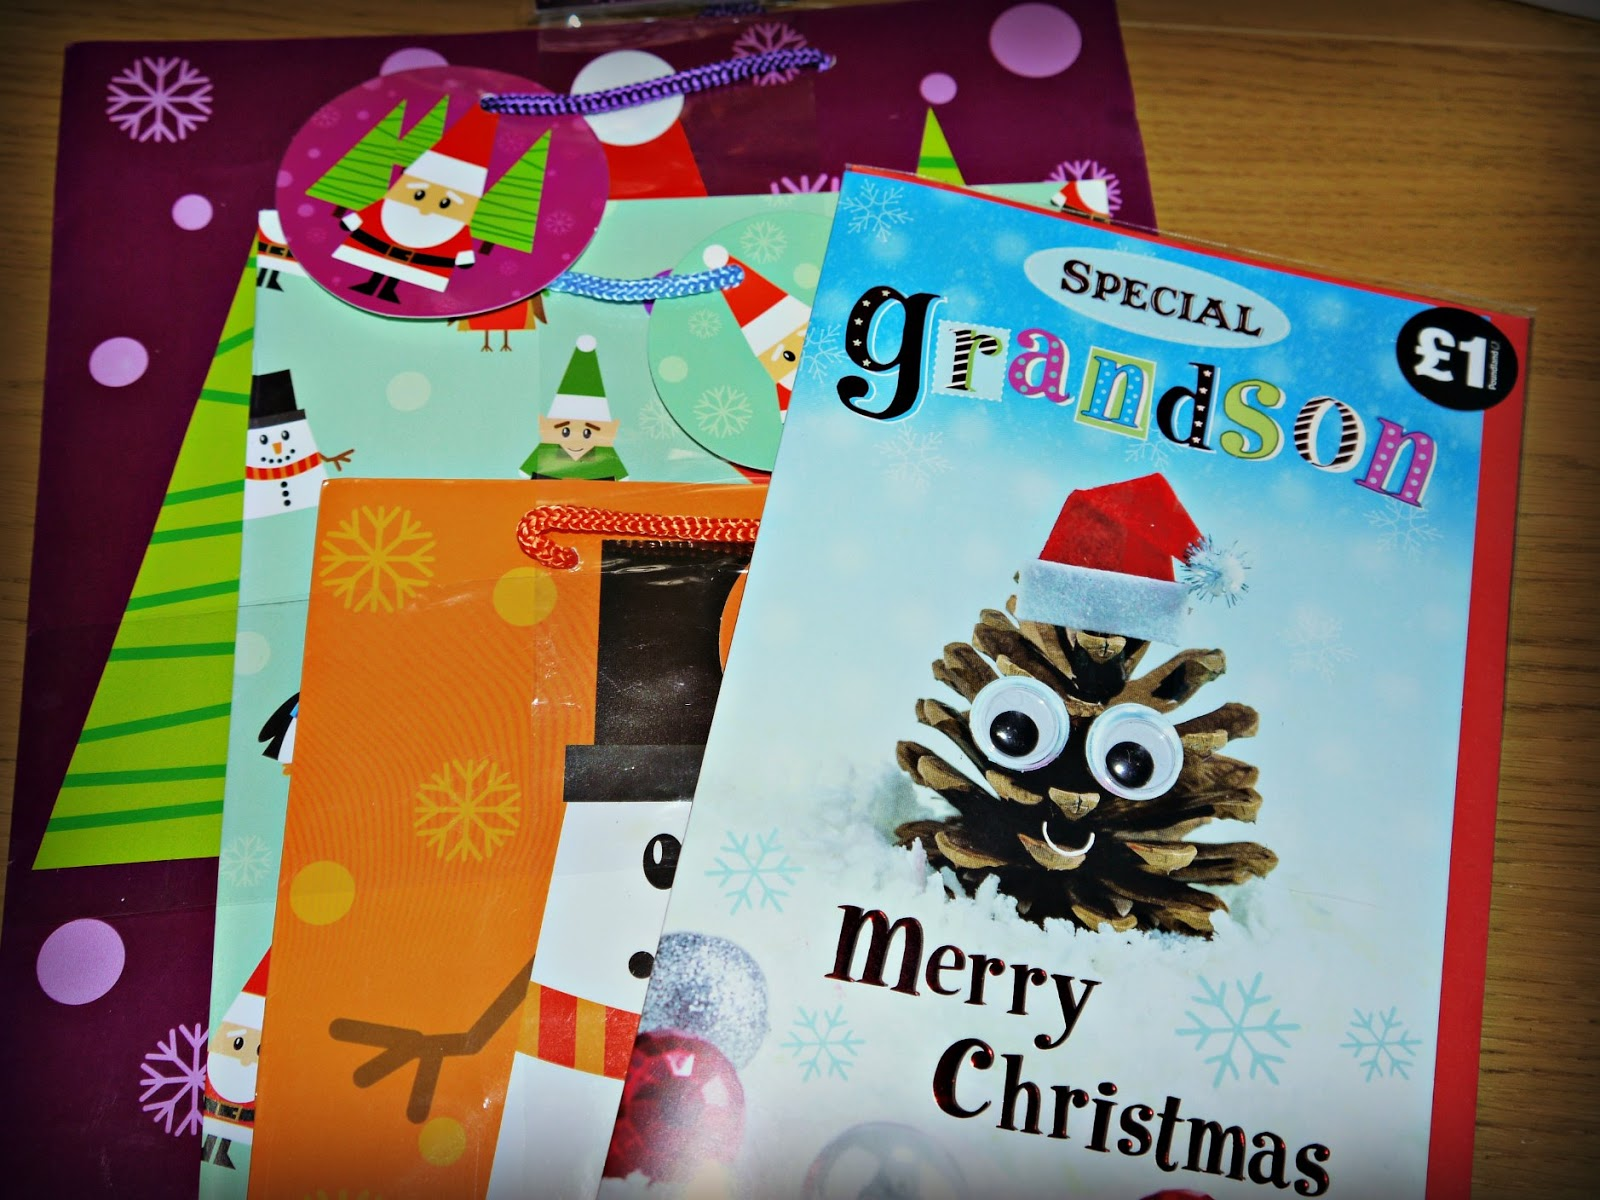 Christmas Decorations Poundland : Inside the wendy house cutting cost of christmas with